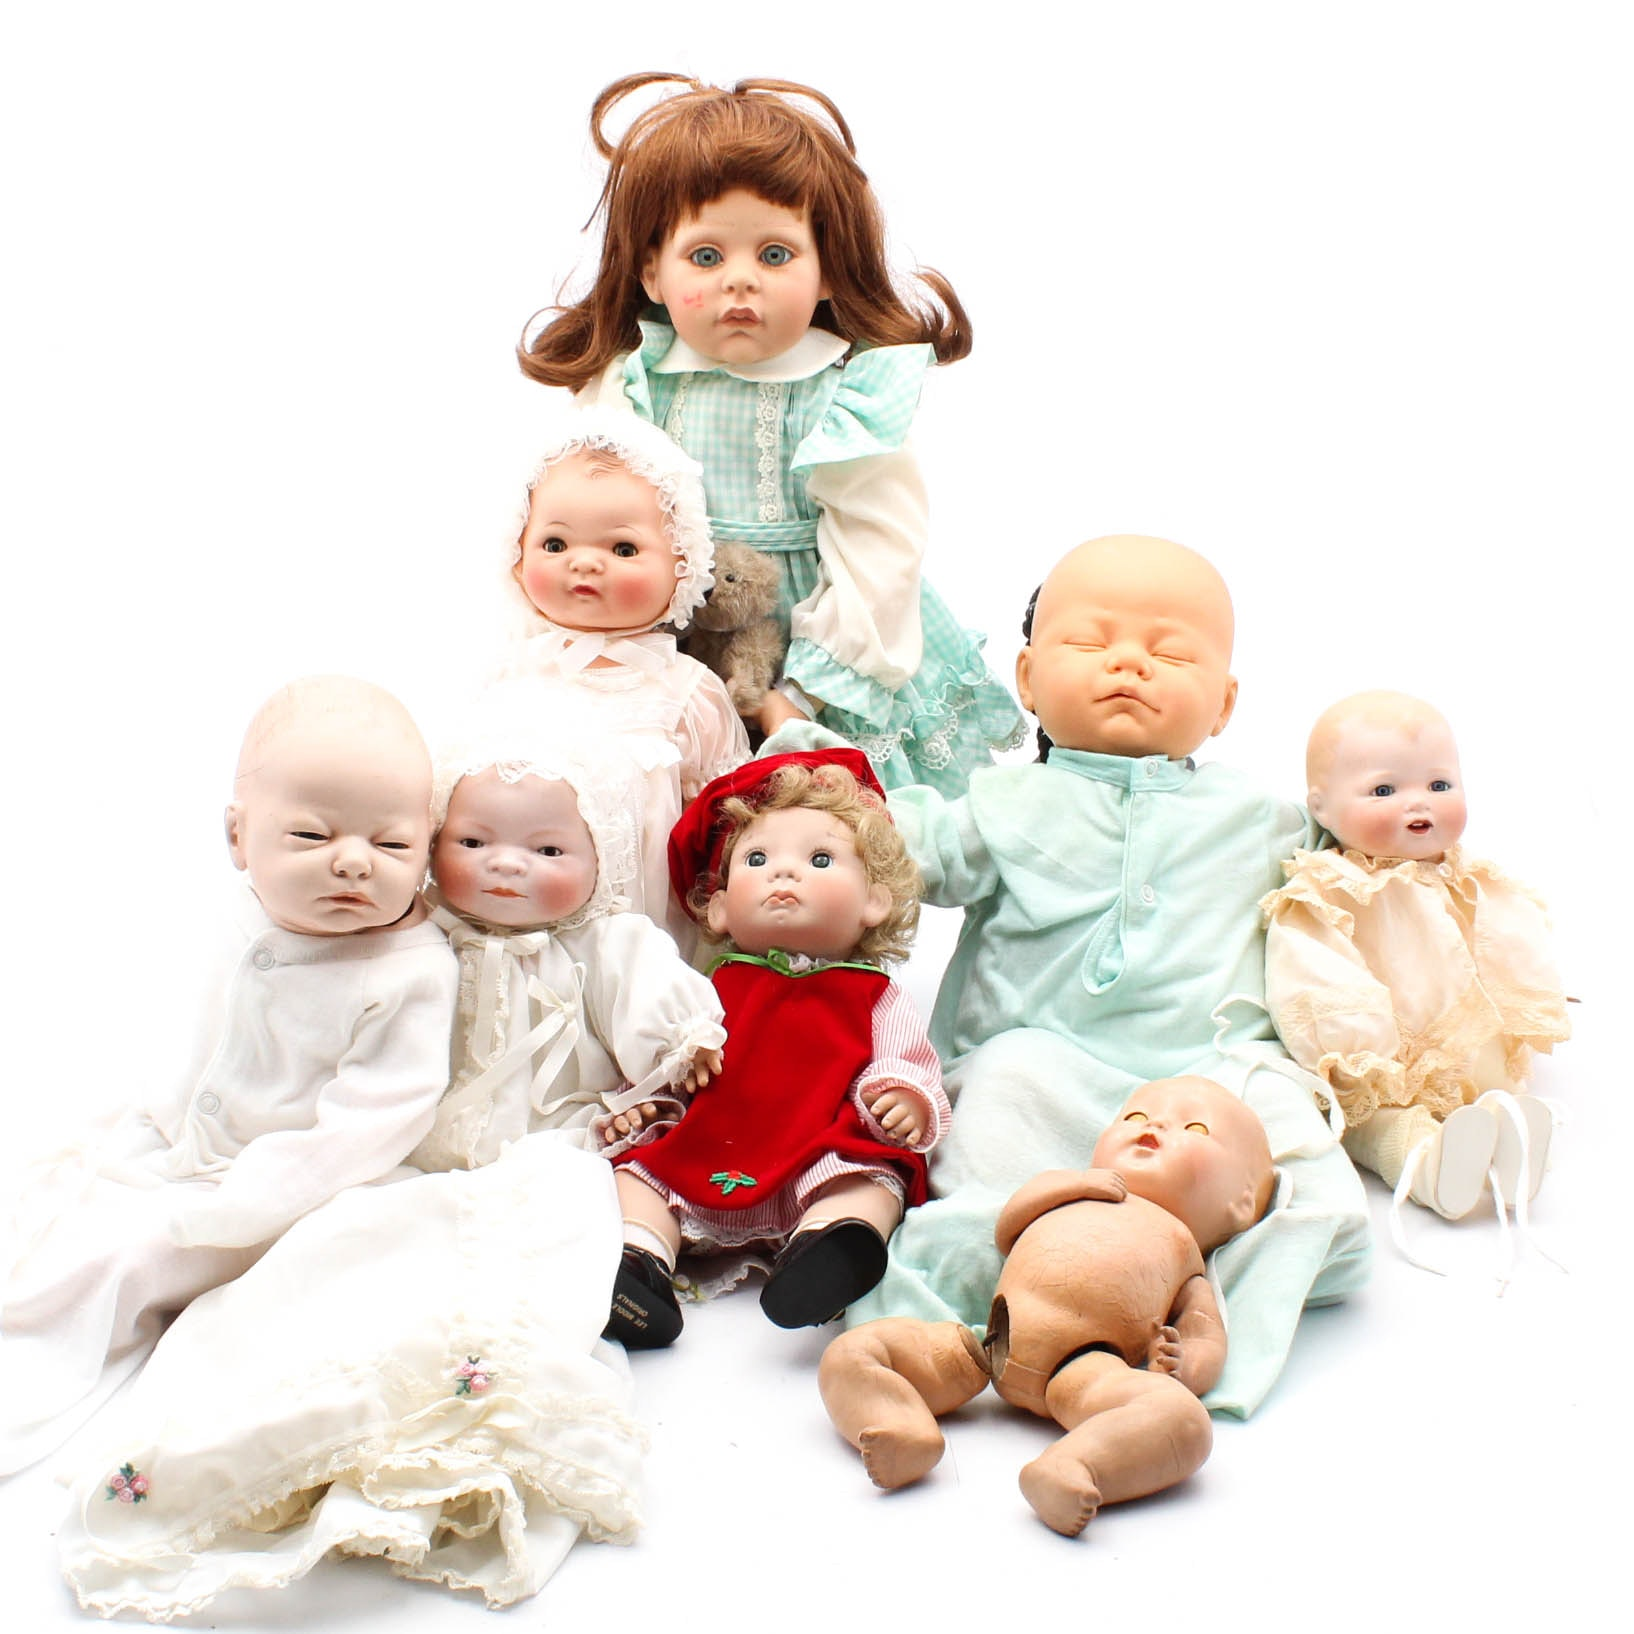 Baby Dolls Including Berjusa, Lee Middleton, Bye-Lo, FayZah Spanos